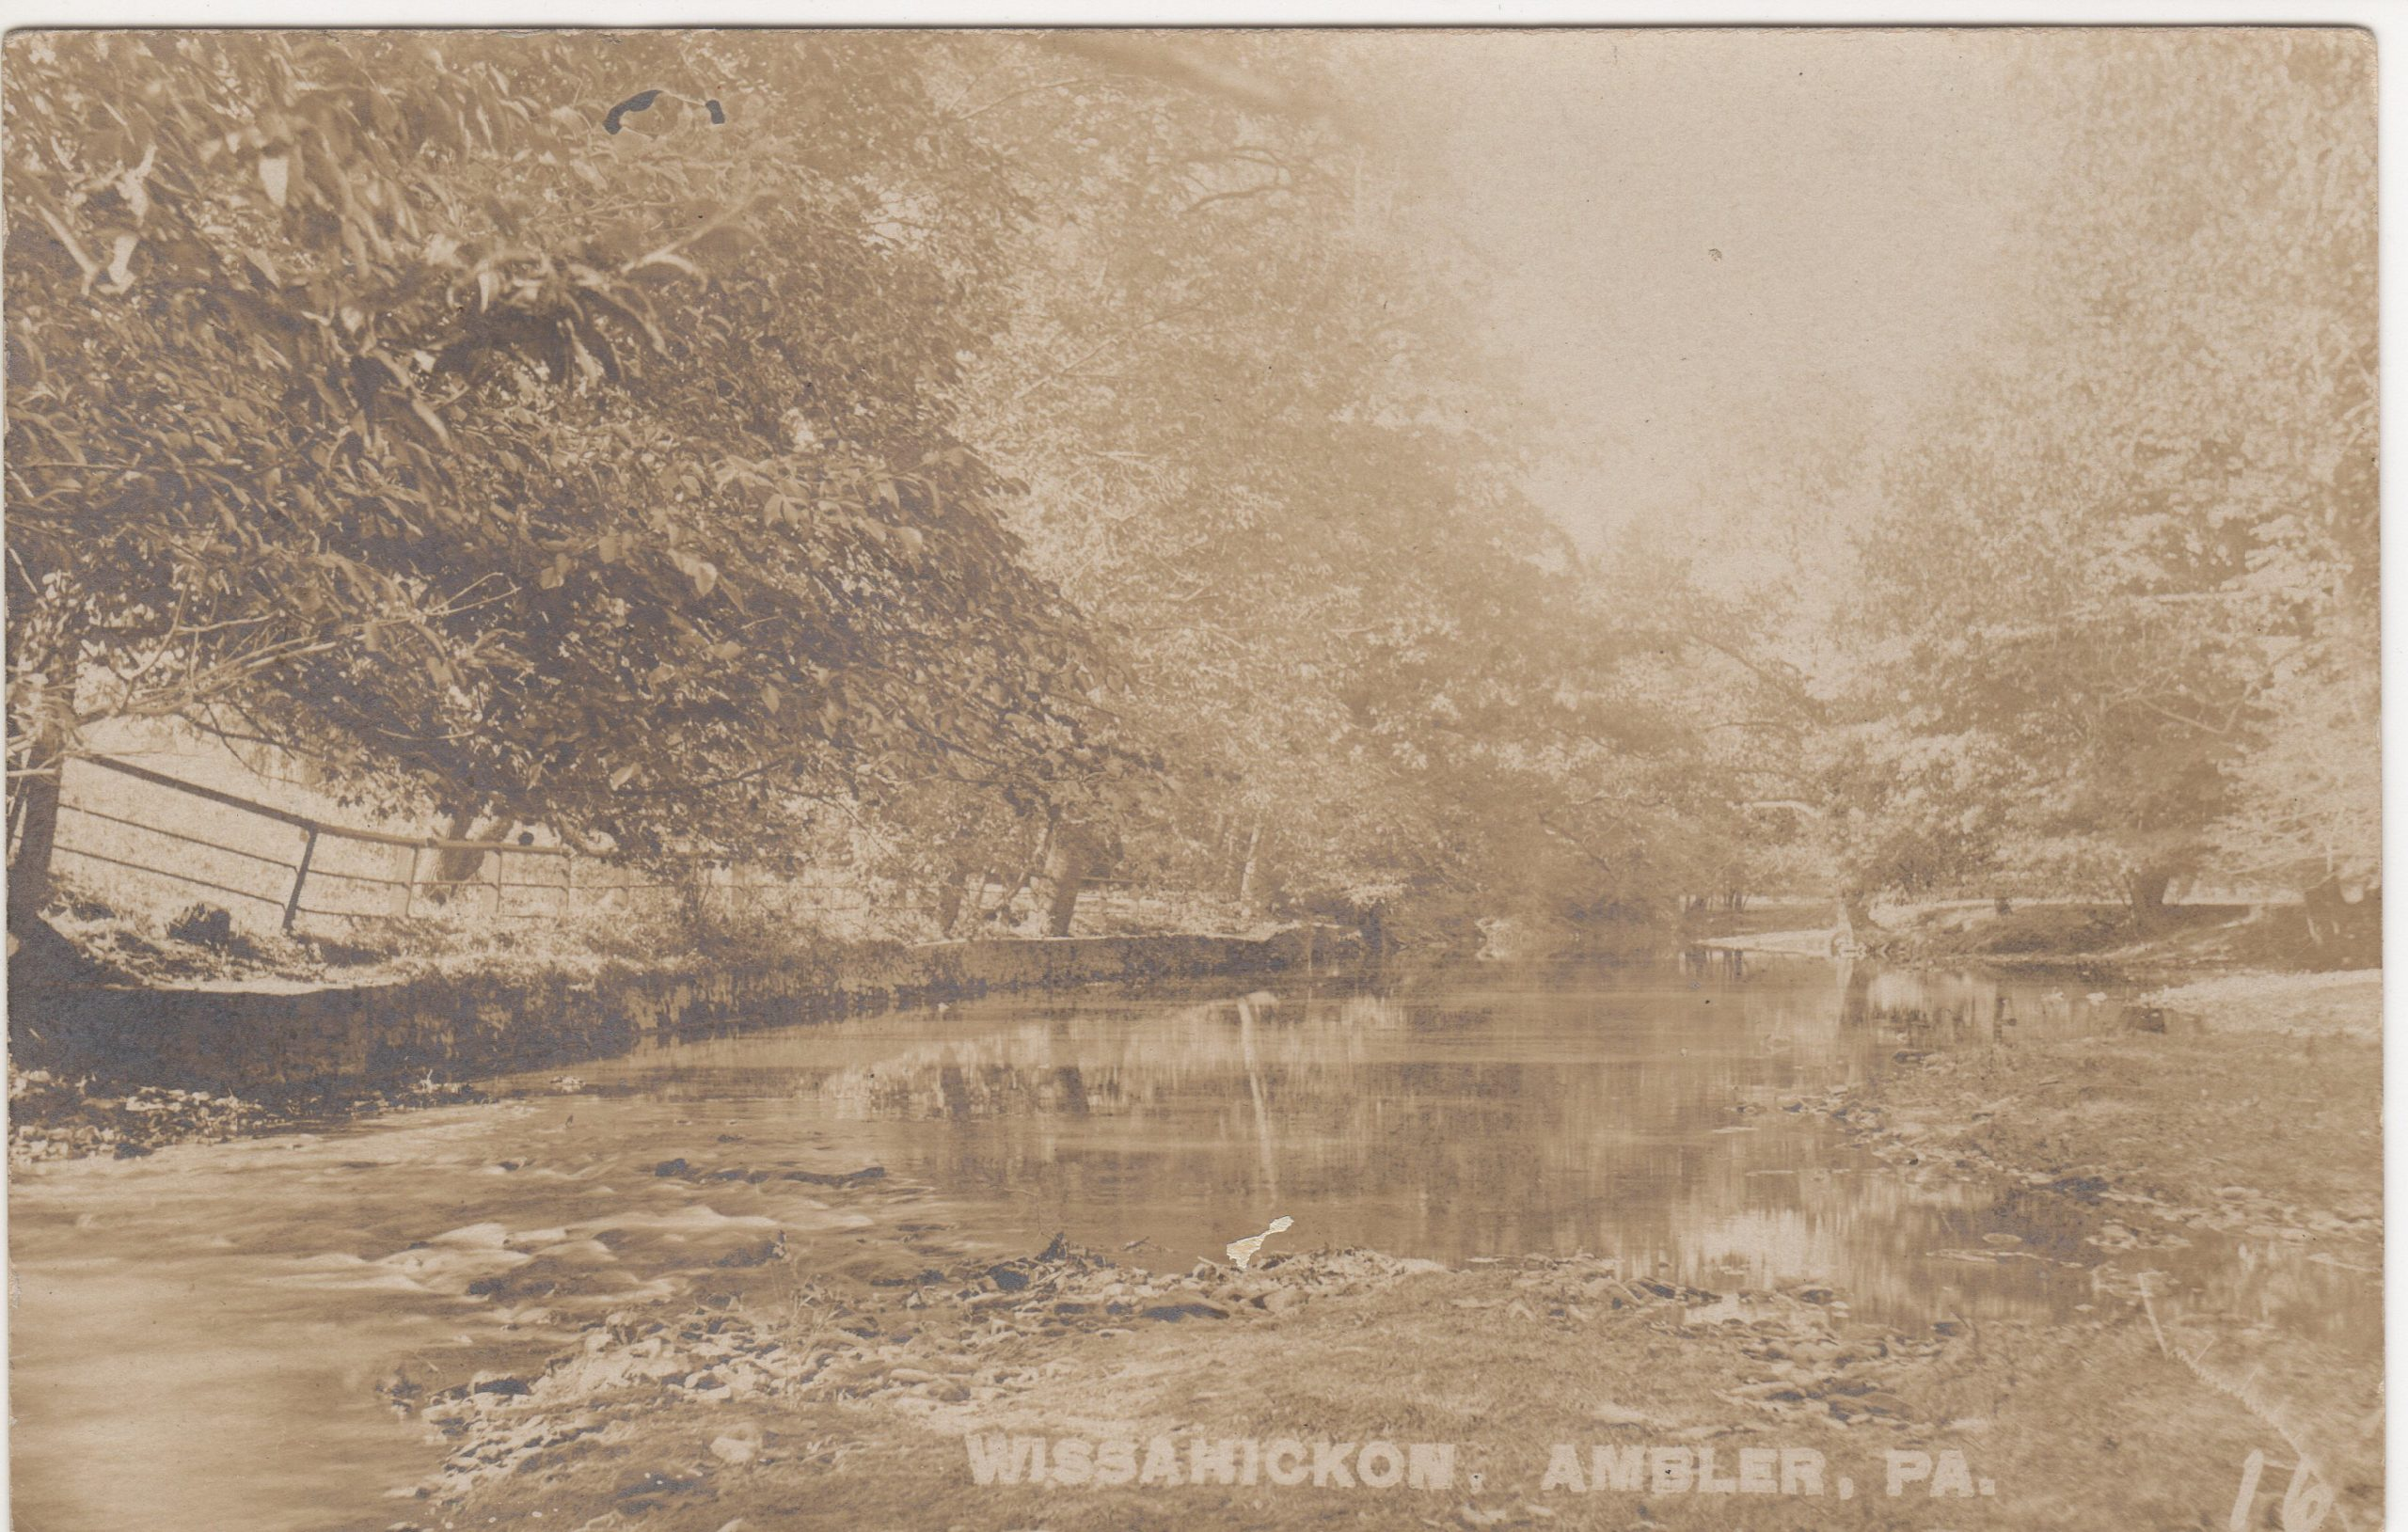 4125.33 Ambler Pa Postcard_Wissahickon Creek (2)